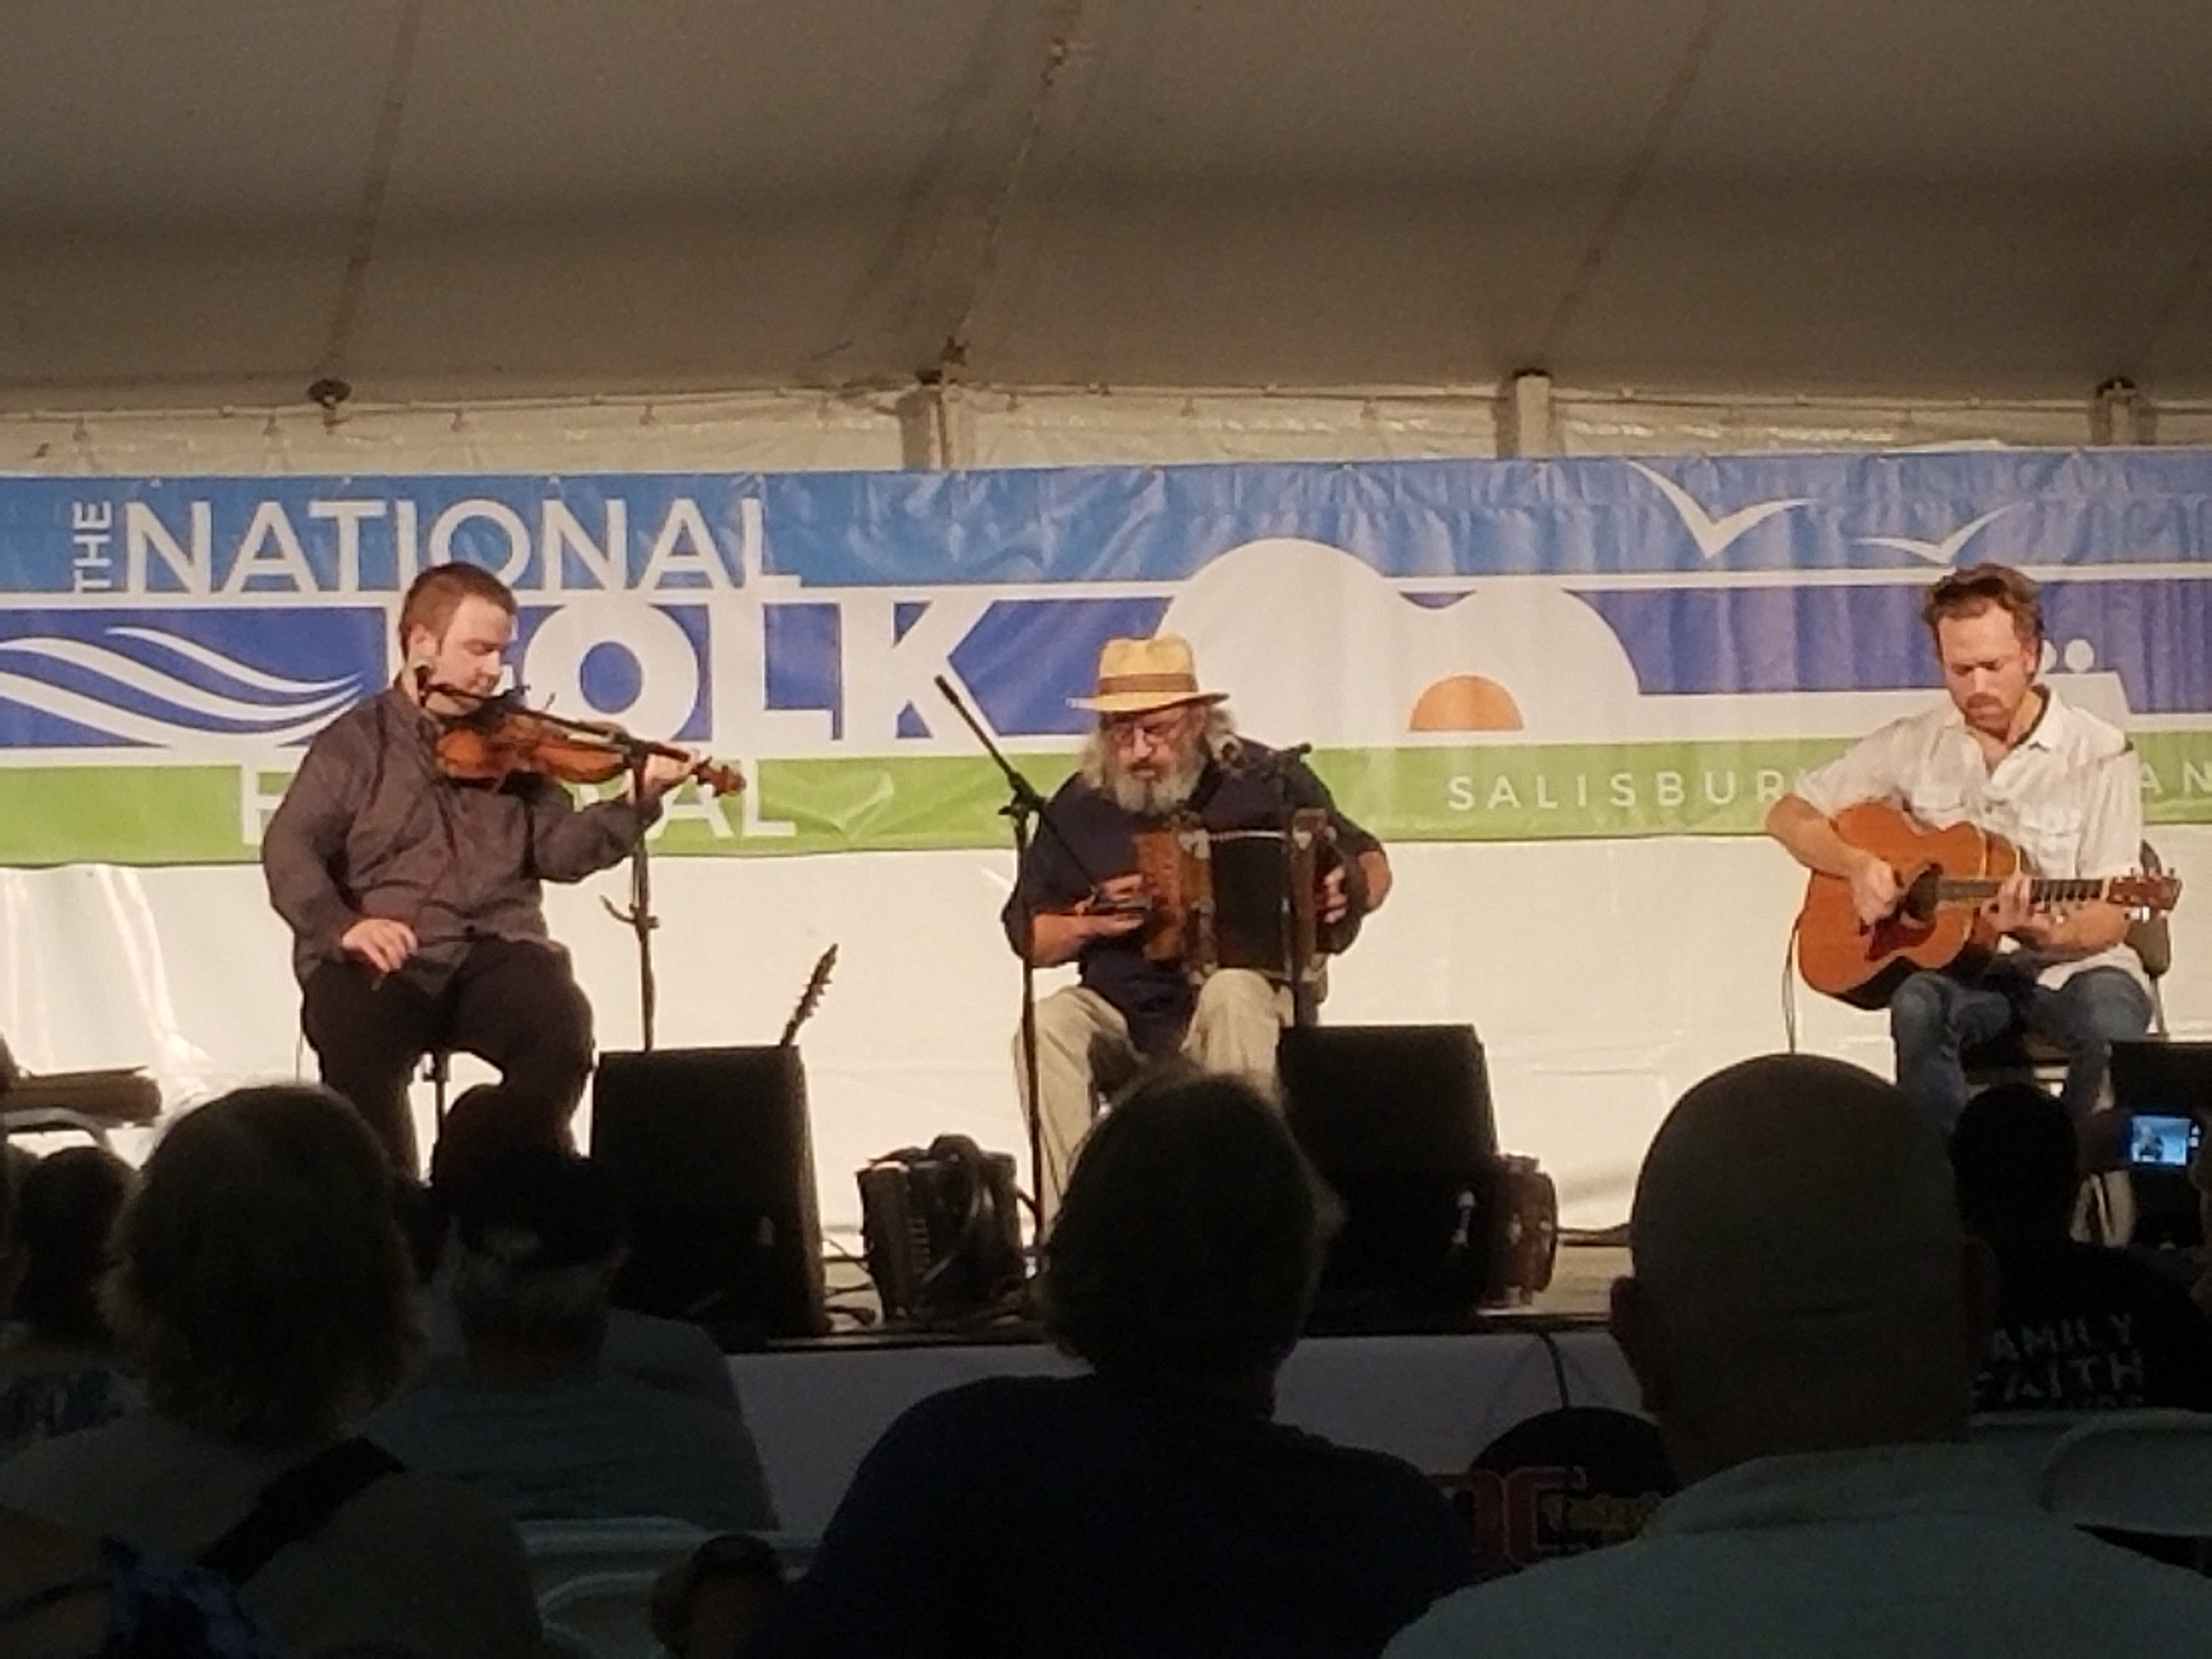 Yves Lambert Trio were one of the performers who played Friday, Sept. 7, 2018 at the National Folk Festival in Salisbury, Maryland.